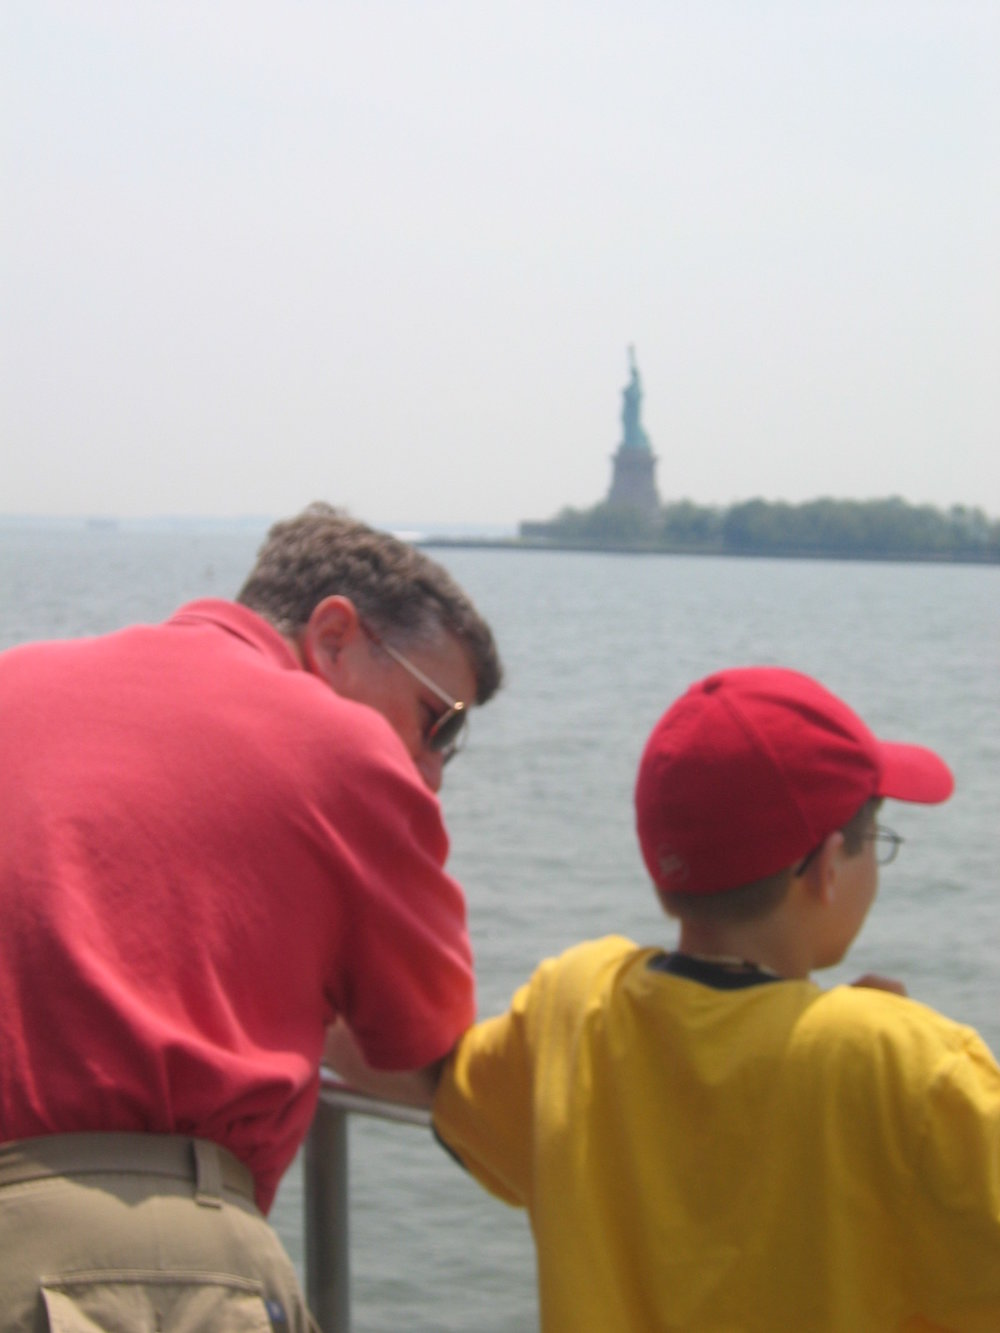 funny that i ended up back in the big apple photo: 2005